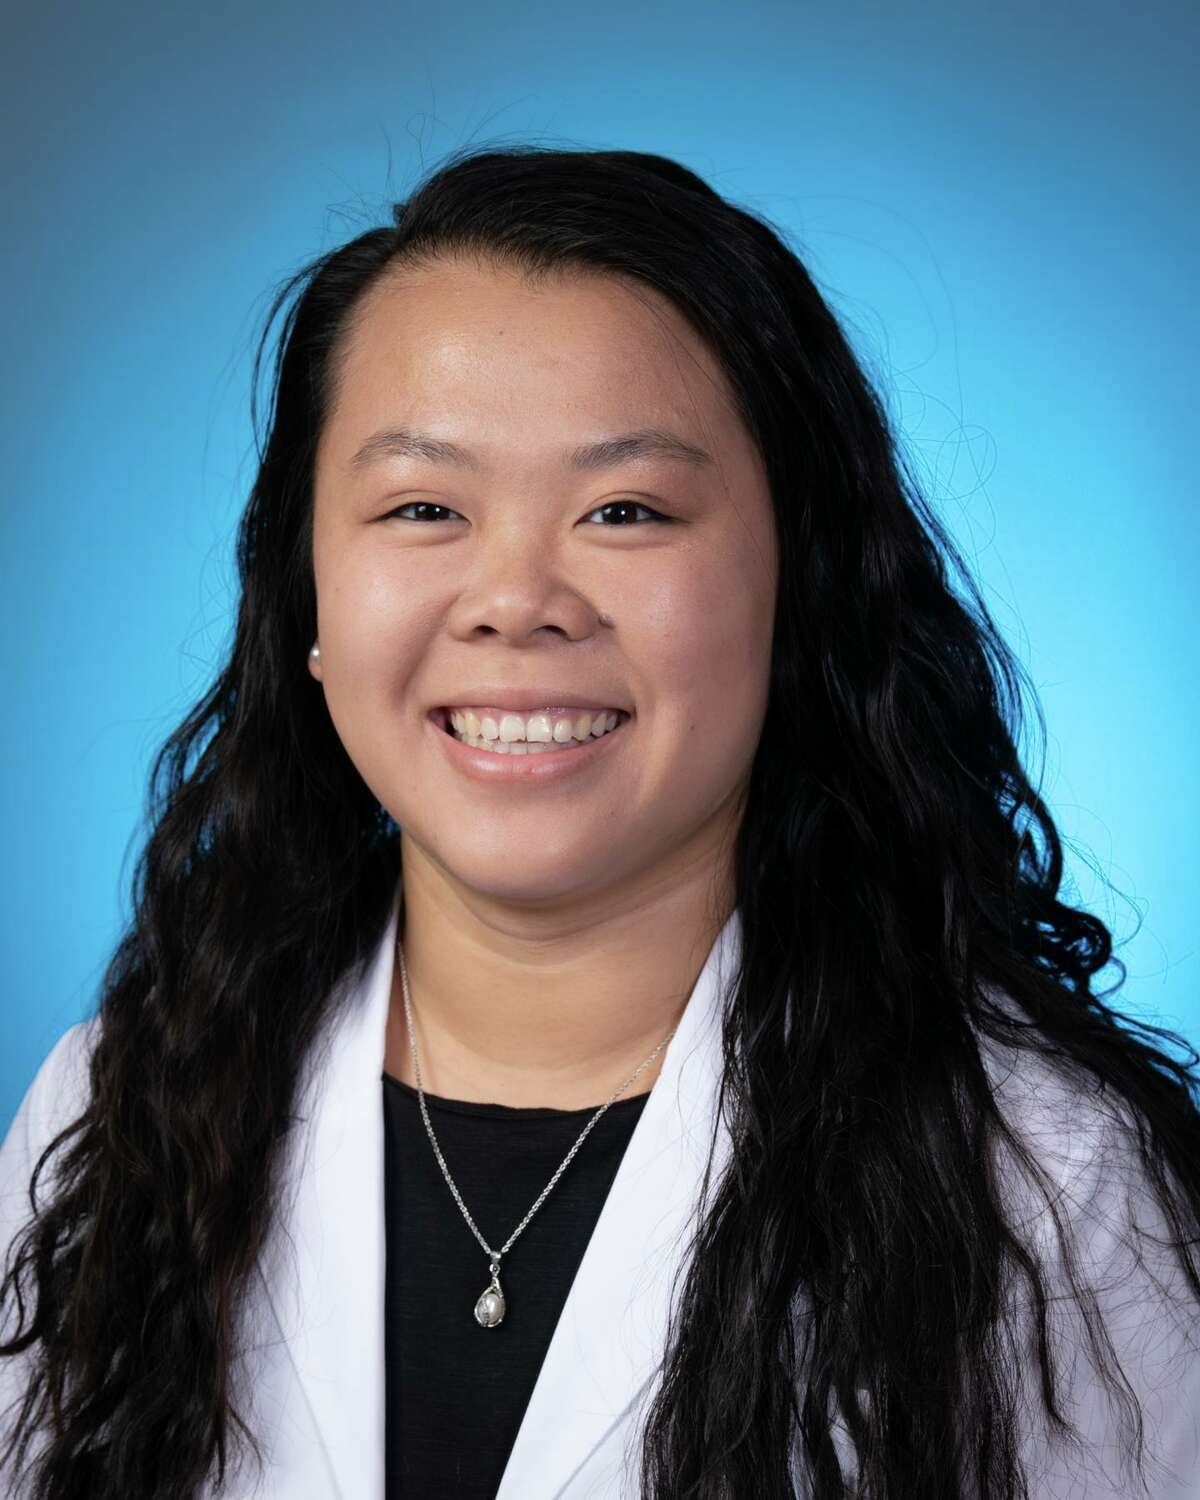 SHU student Victoria Ho was named PA student of the year by the American Academy of PAs.